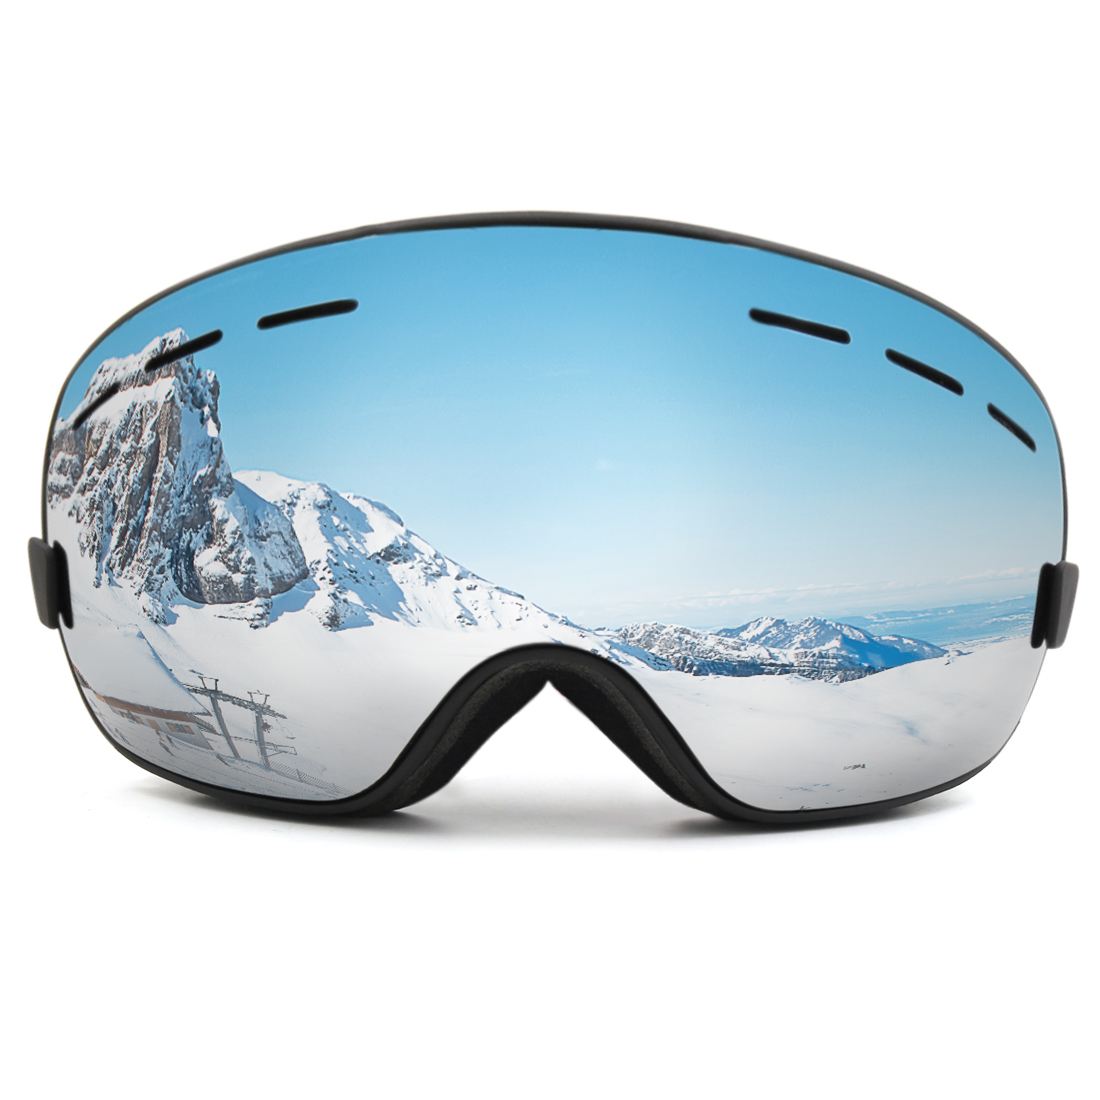 Snowboard Ski Goggles Anti-fog UV Protect Mirror Lens Glasses Women Men Windproof Skiing Riding Hiking Motocycling #1